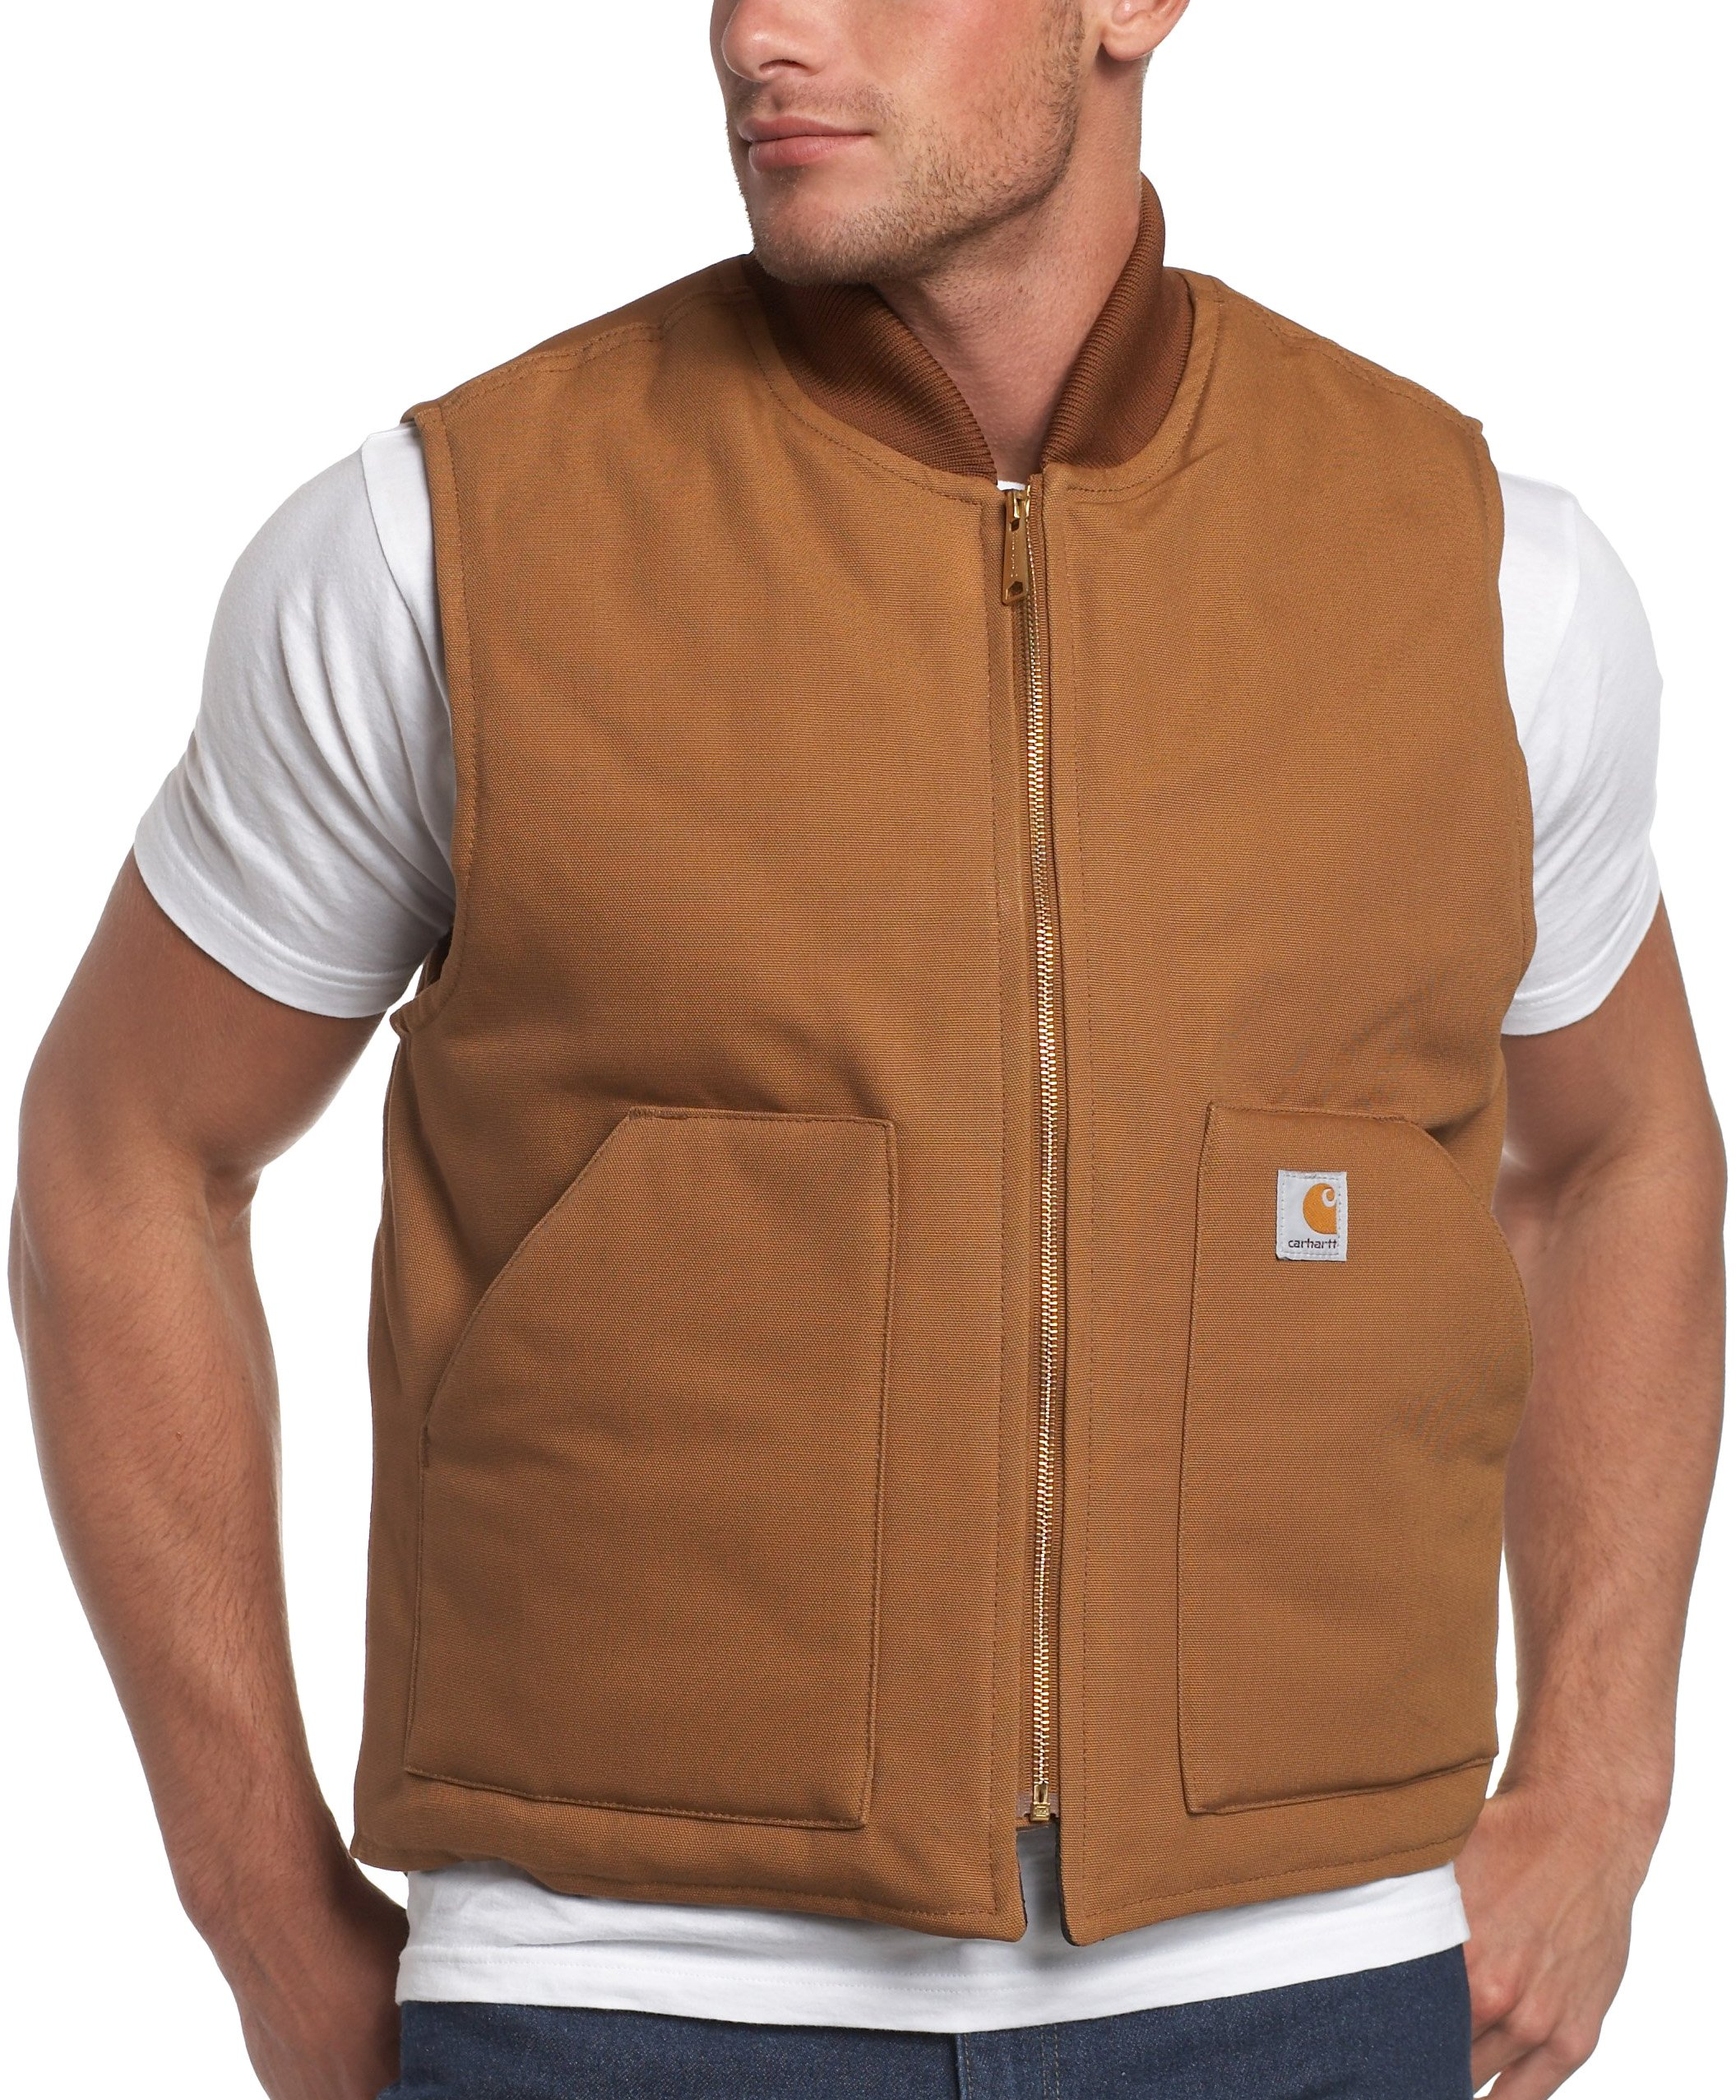 Carhartt Men's Arctic-Quilt Lined Duck Vest (Regular and Big & Tall Sizes), Brown, Large by Carhartt